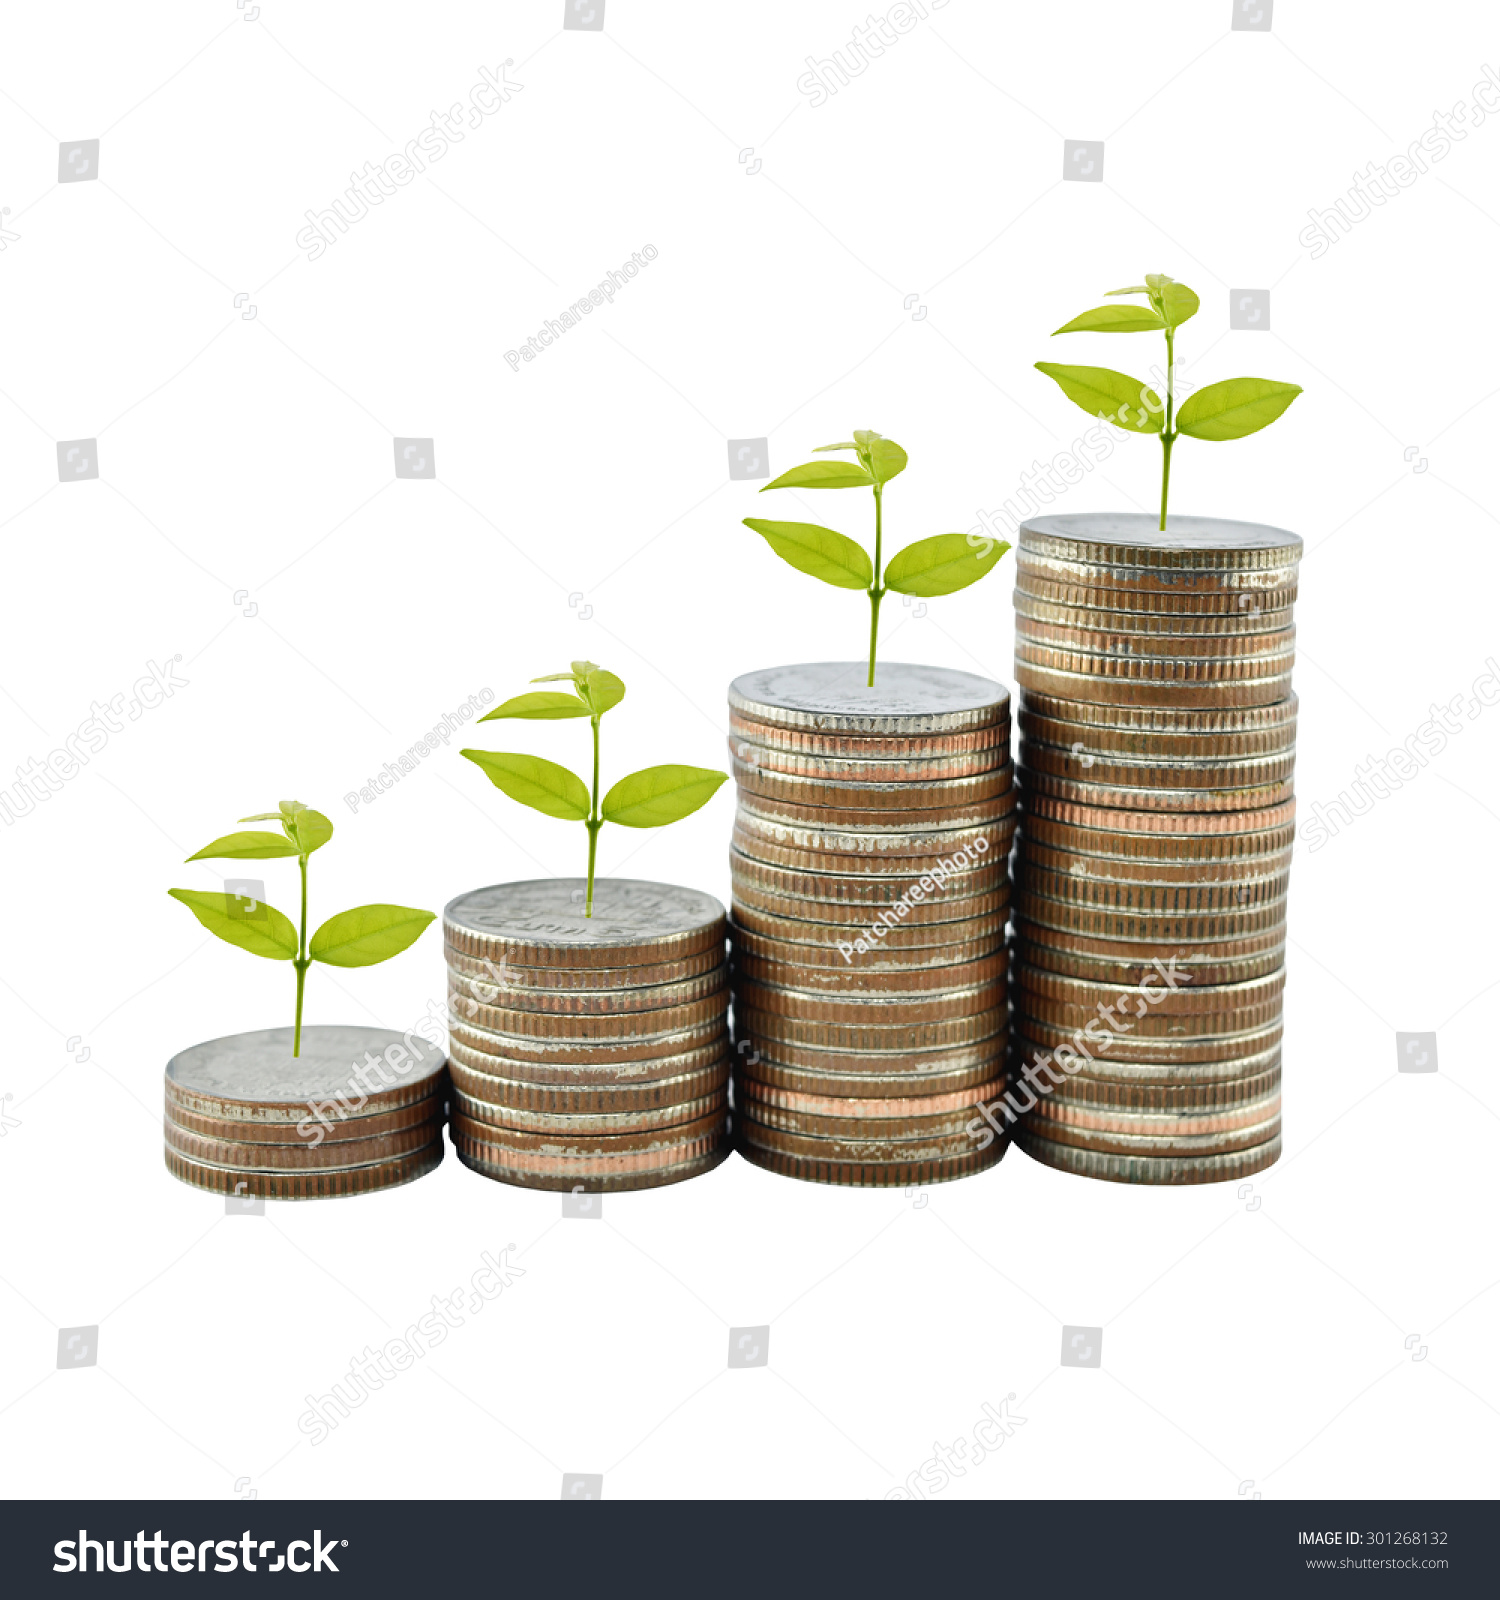 Tree On Money Growth Concept Business Stock Photo 301268132 ...